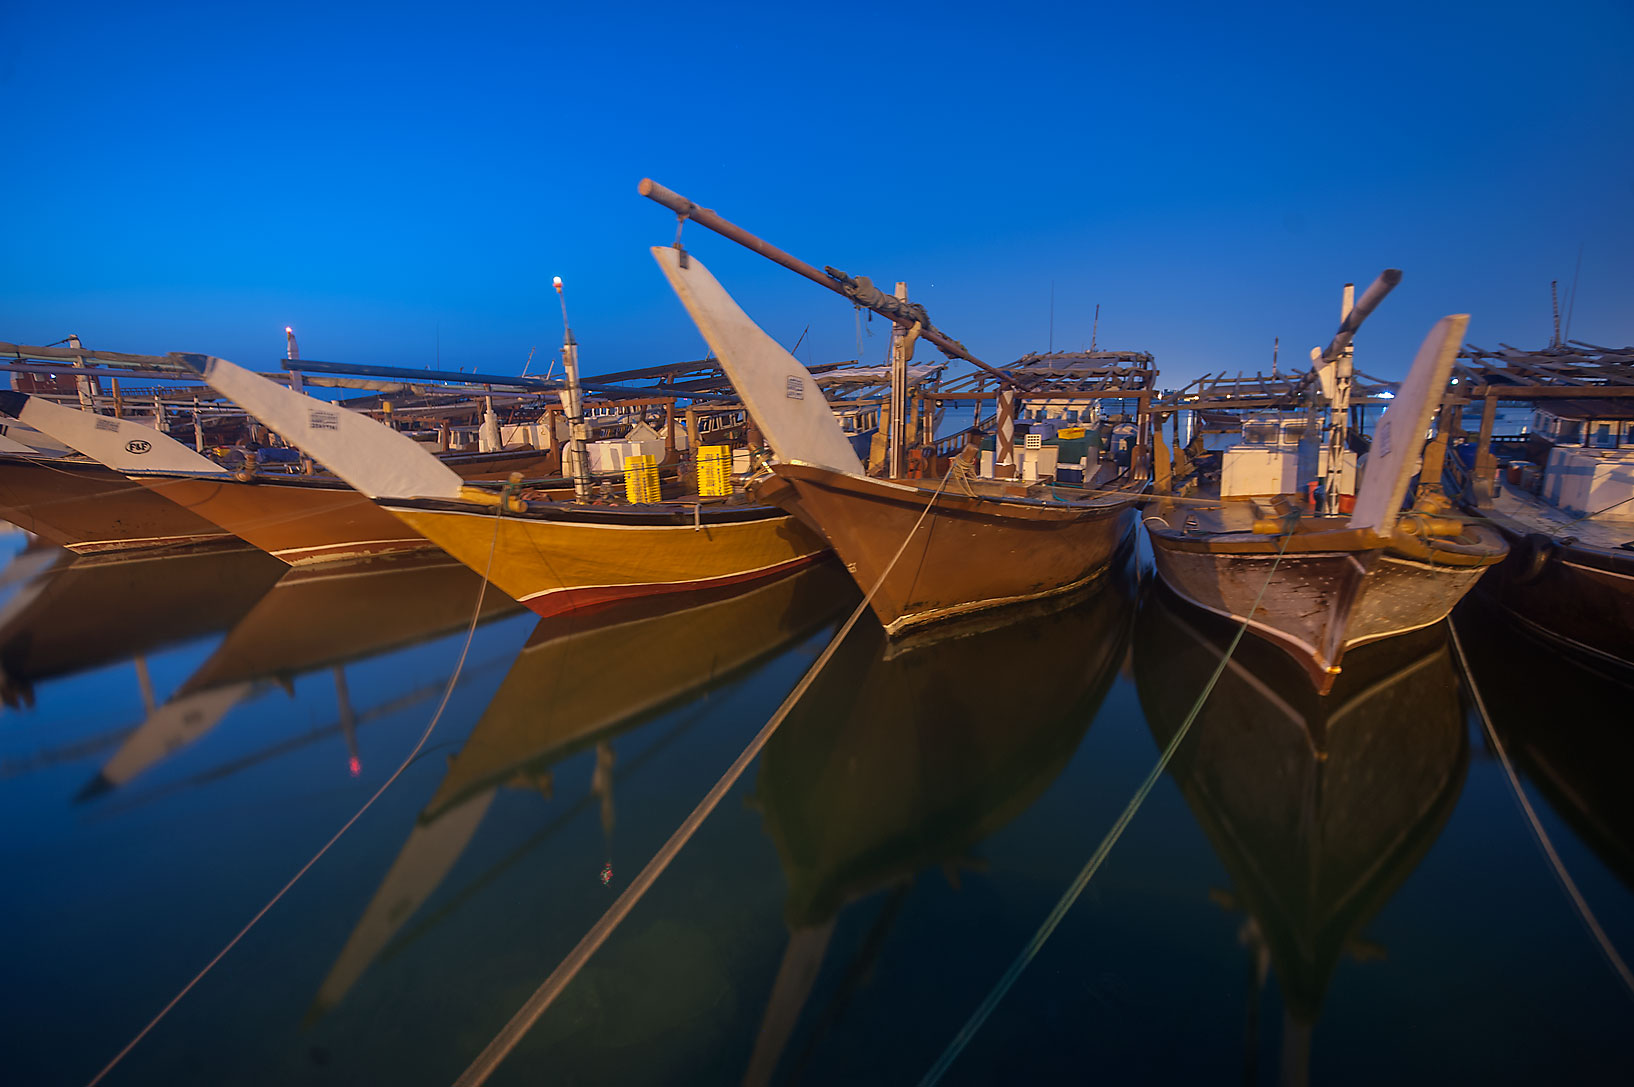 Dhow fishing boats, view from a pier in Al Wakra. Qatar